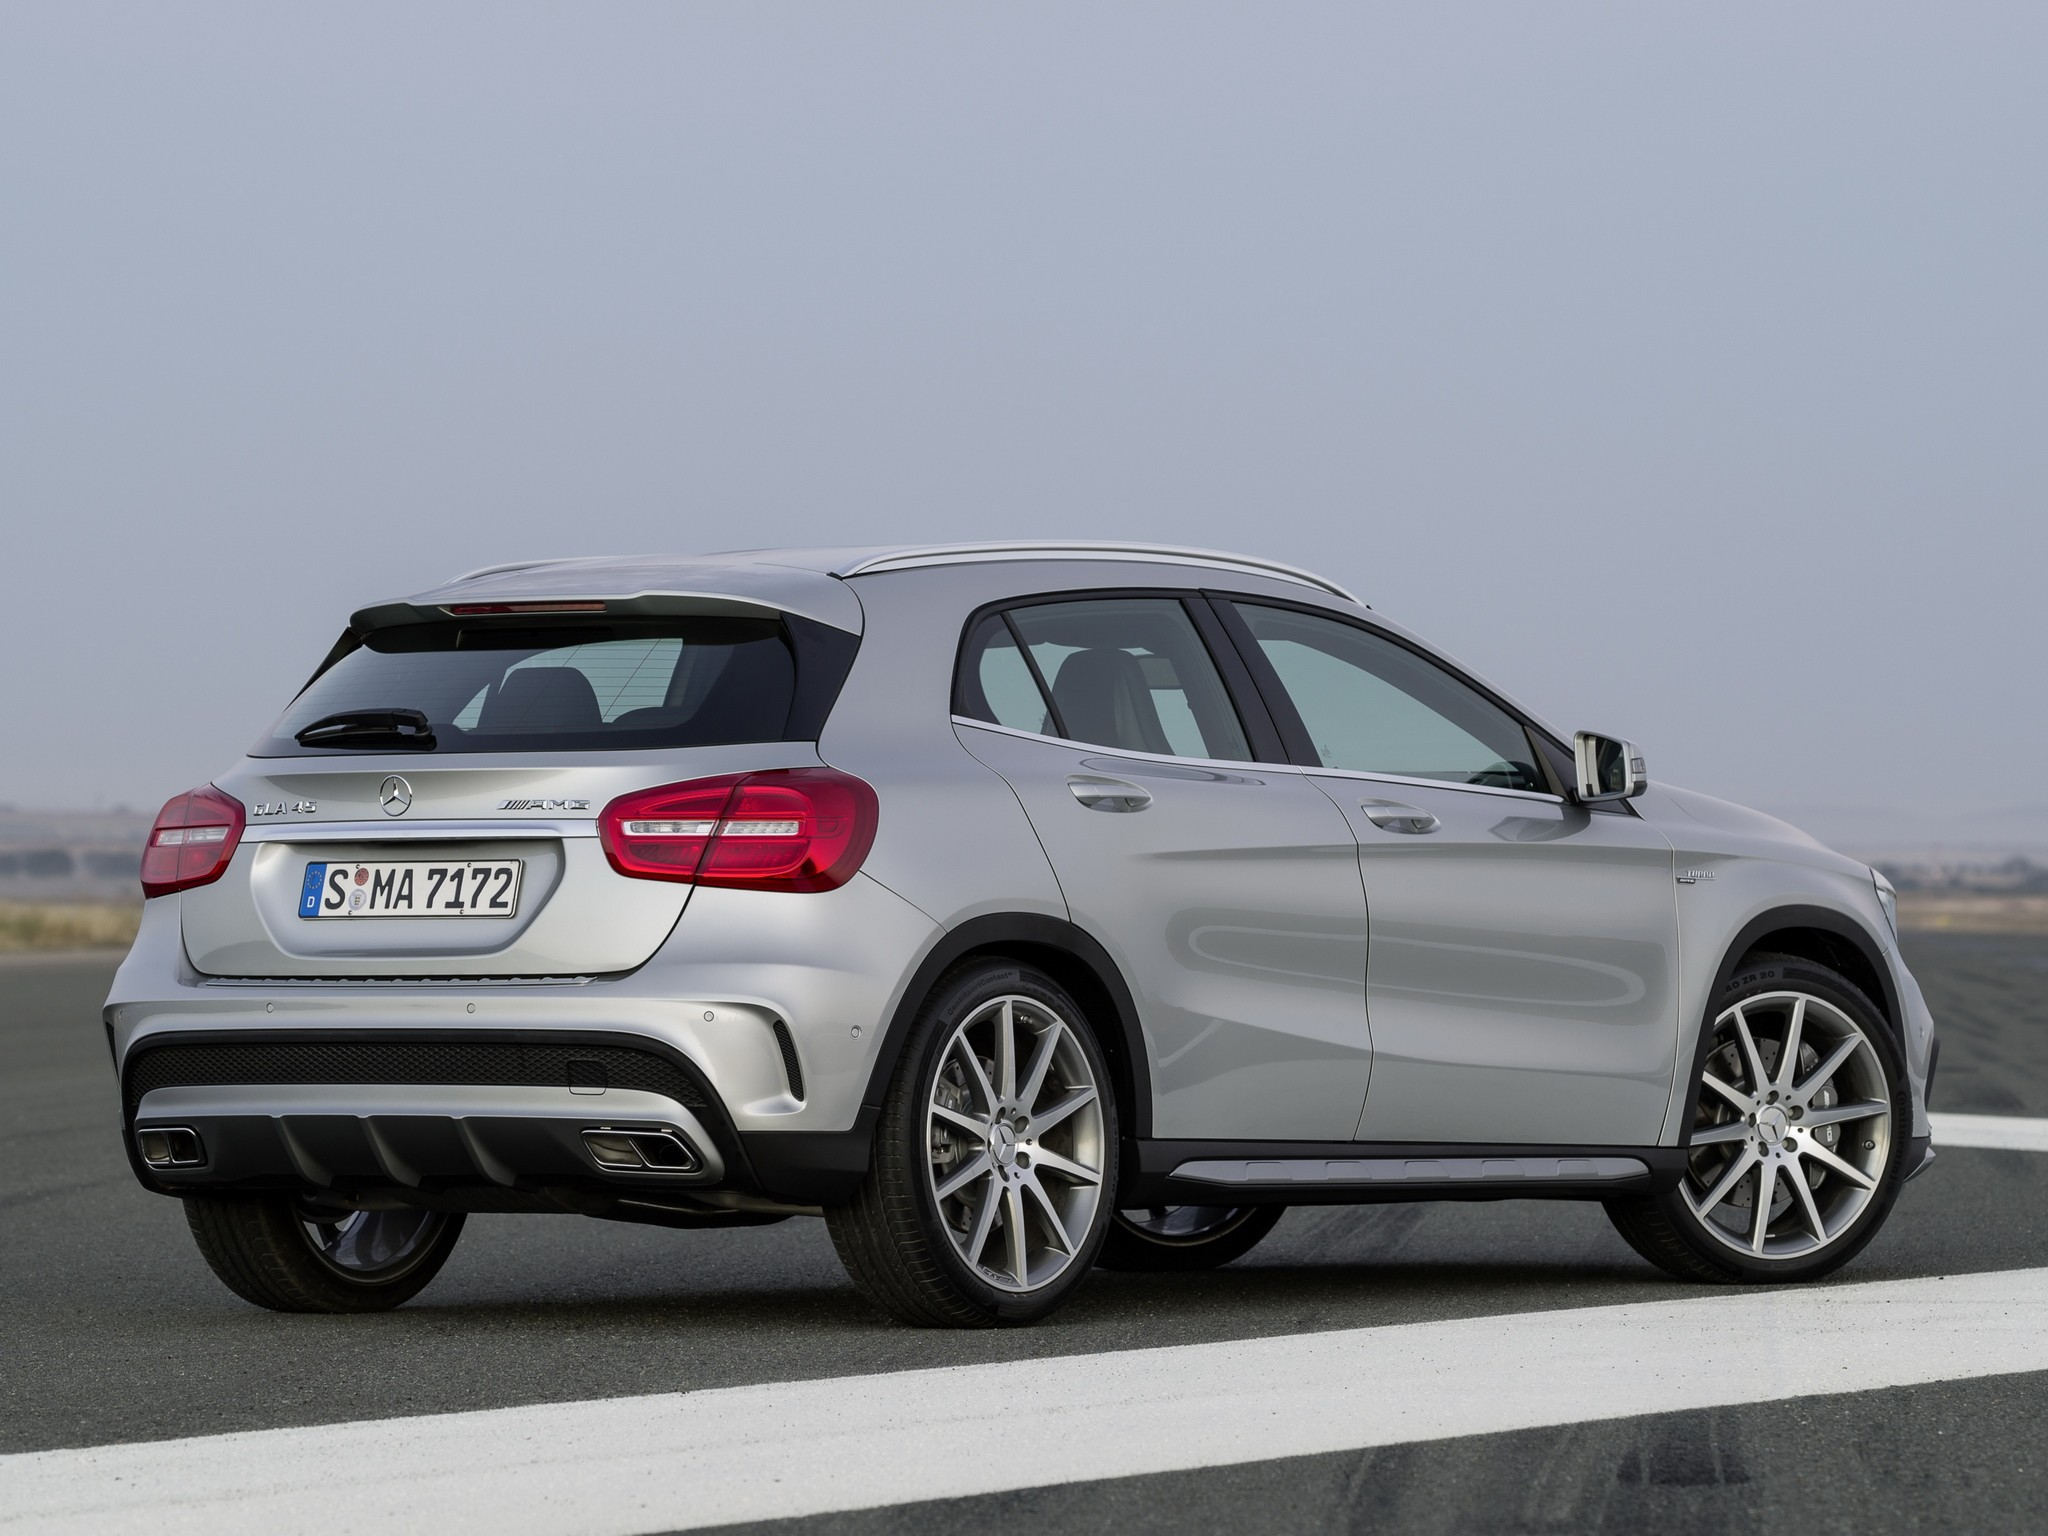 mercedes benz gla 45 amg x156 specs photos 2014 2015 2016 2017 autoevolution. Black Bedroom Furniture Sets. Home Design Ideas